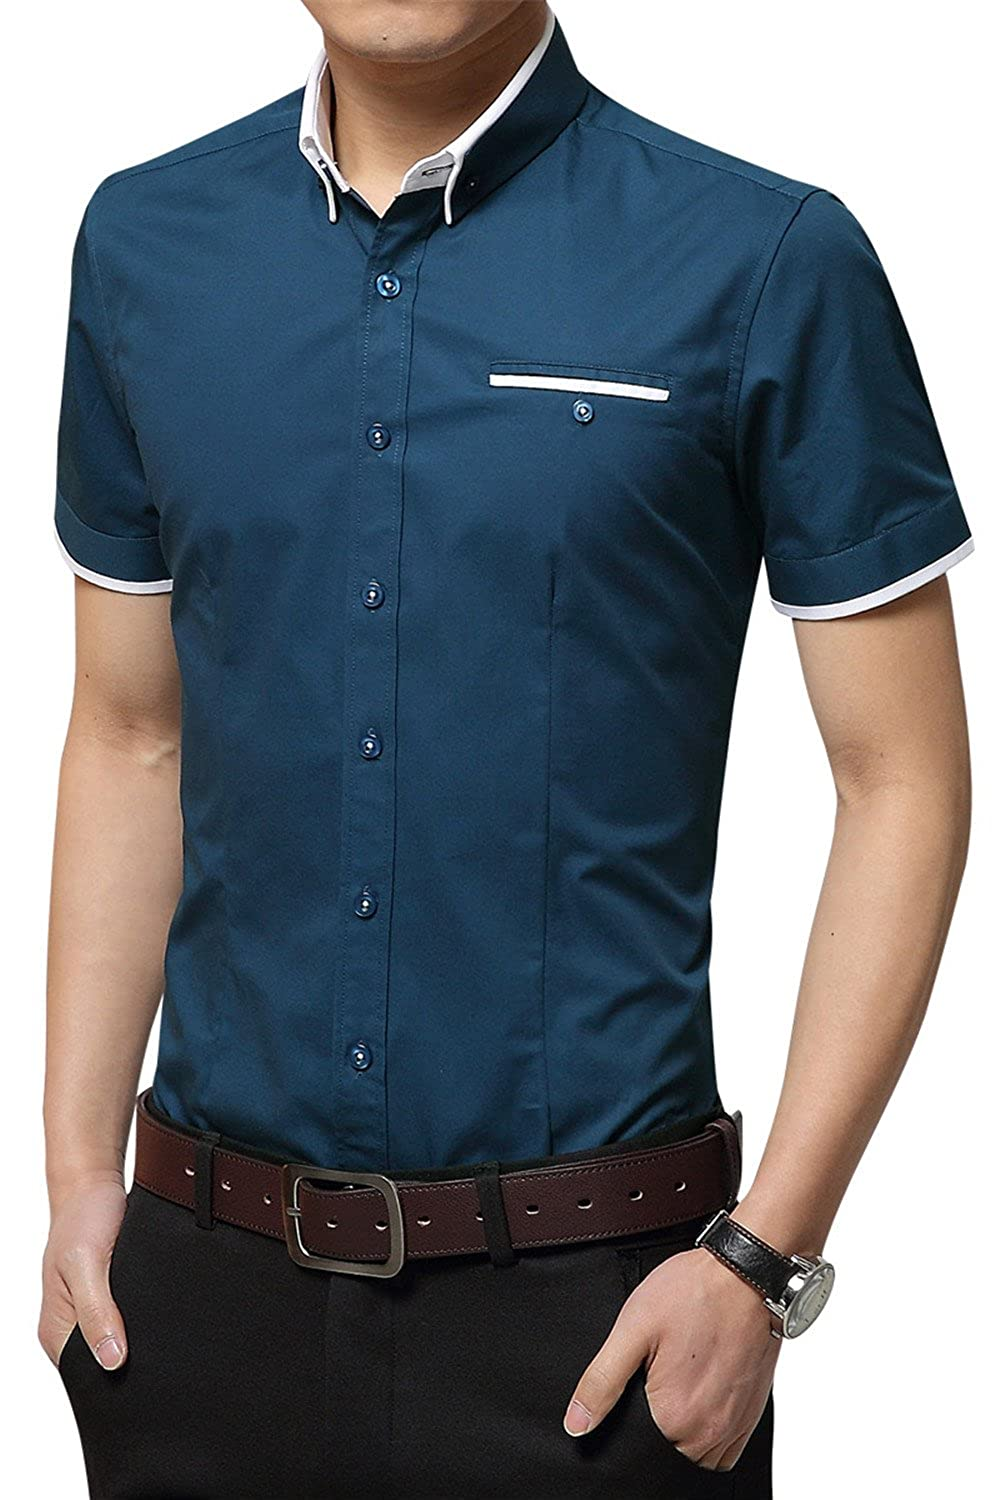 b2225d8ae0d5 Button-down closure dress shirt  short-sleeves  Standard fit style  Great  thin cotton fabric